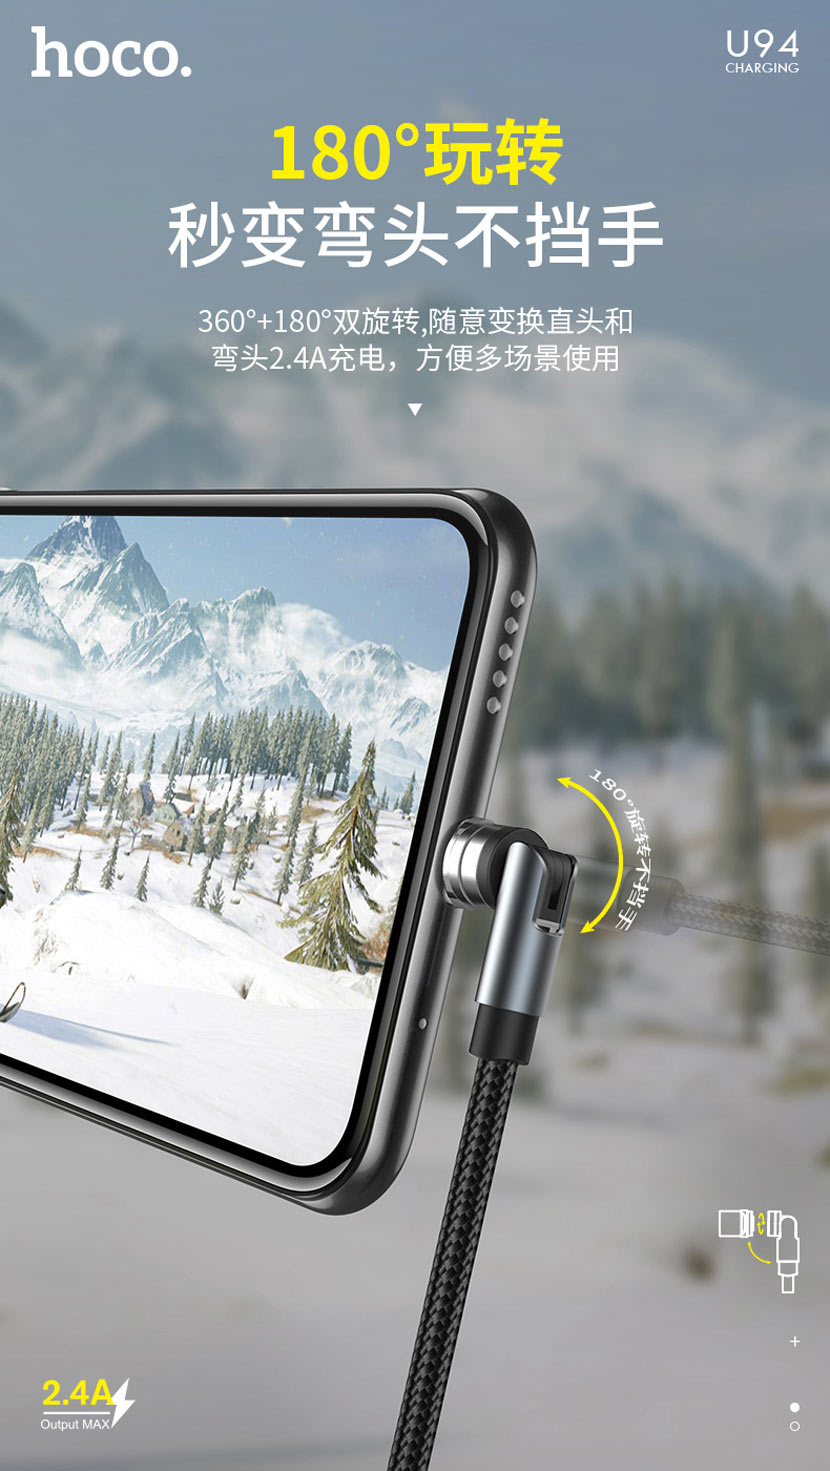 hoco news u94 universal rotating magnetic charging cable connection cn